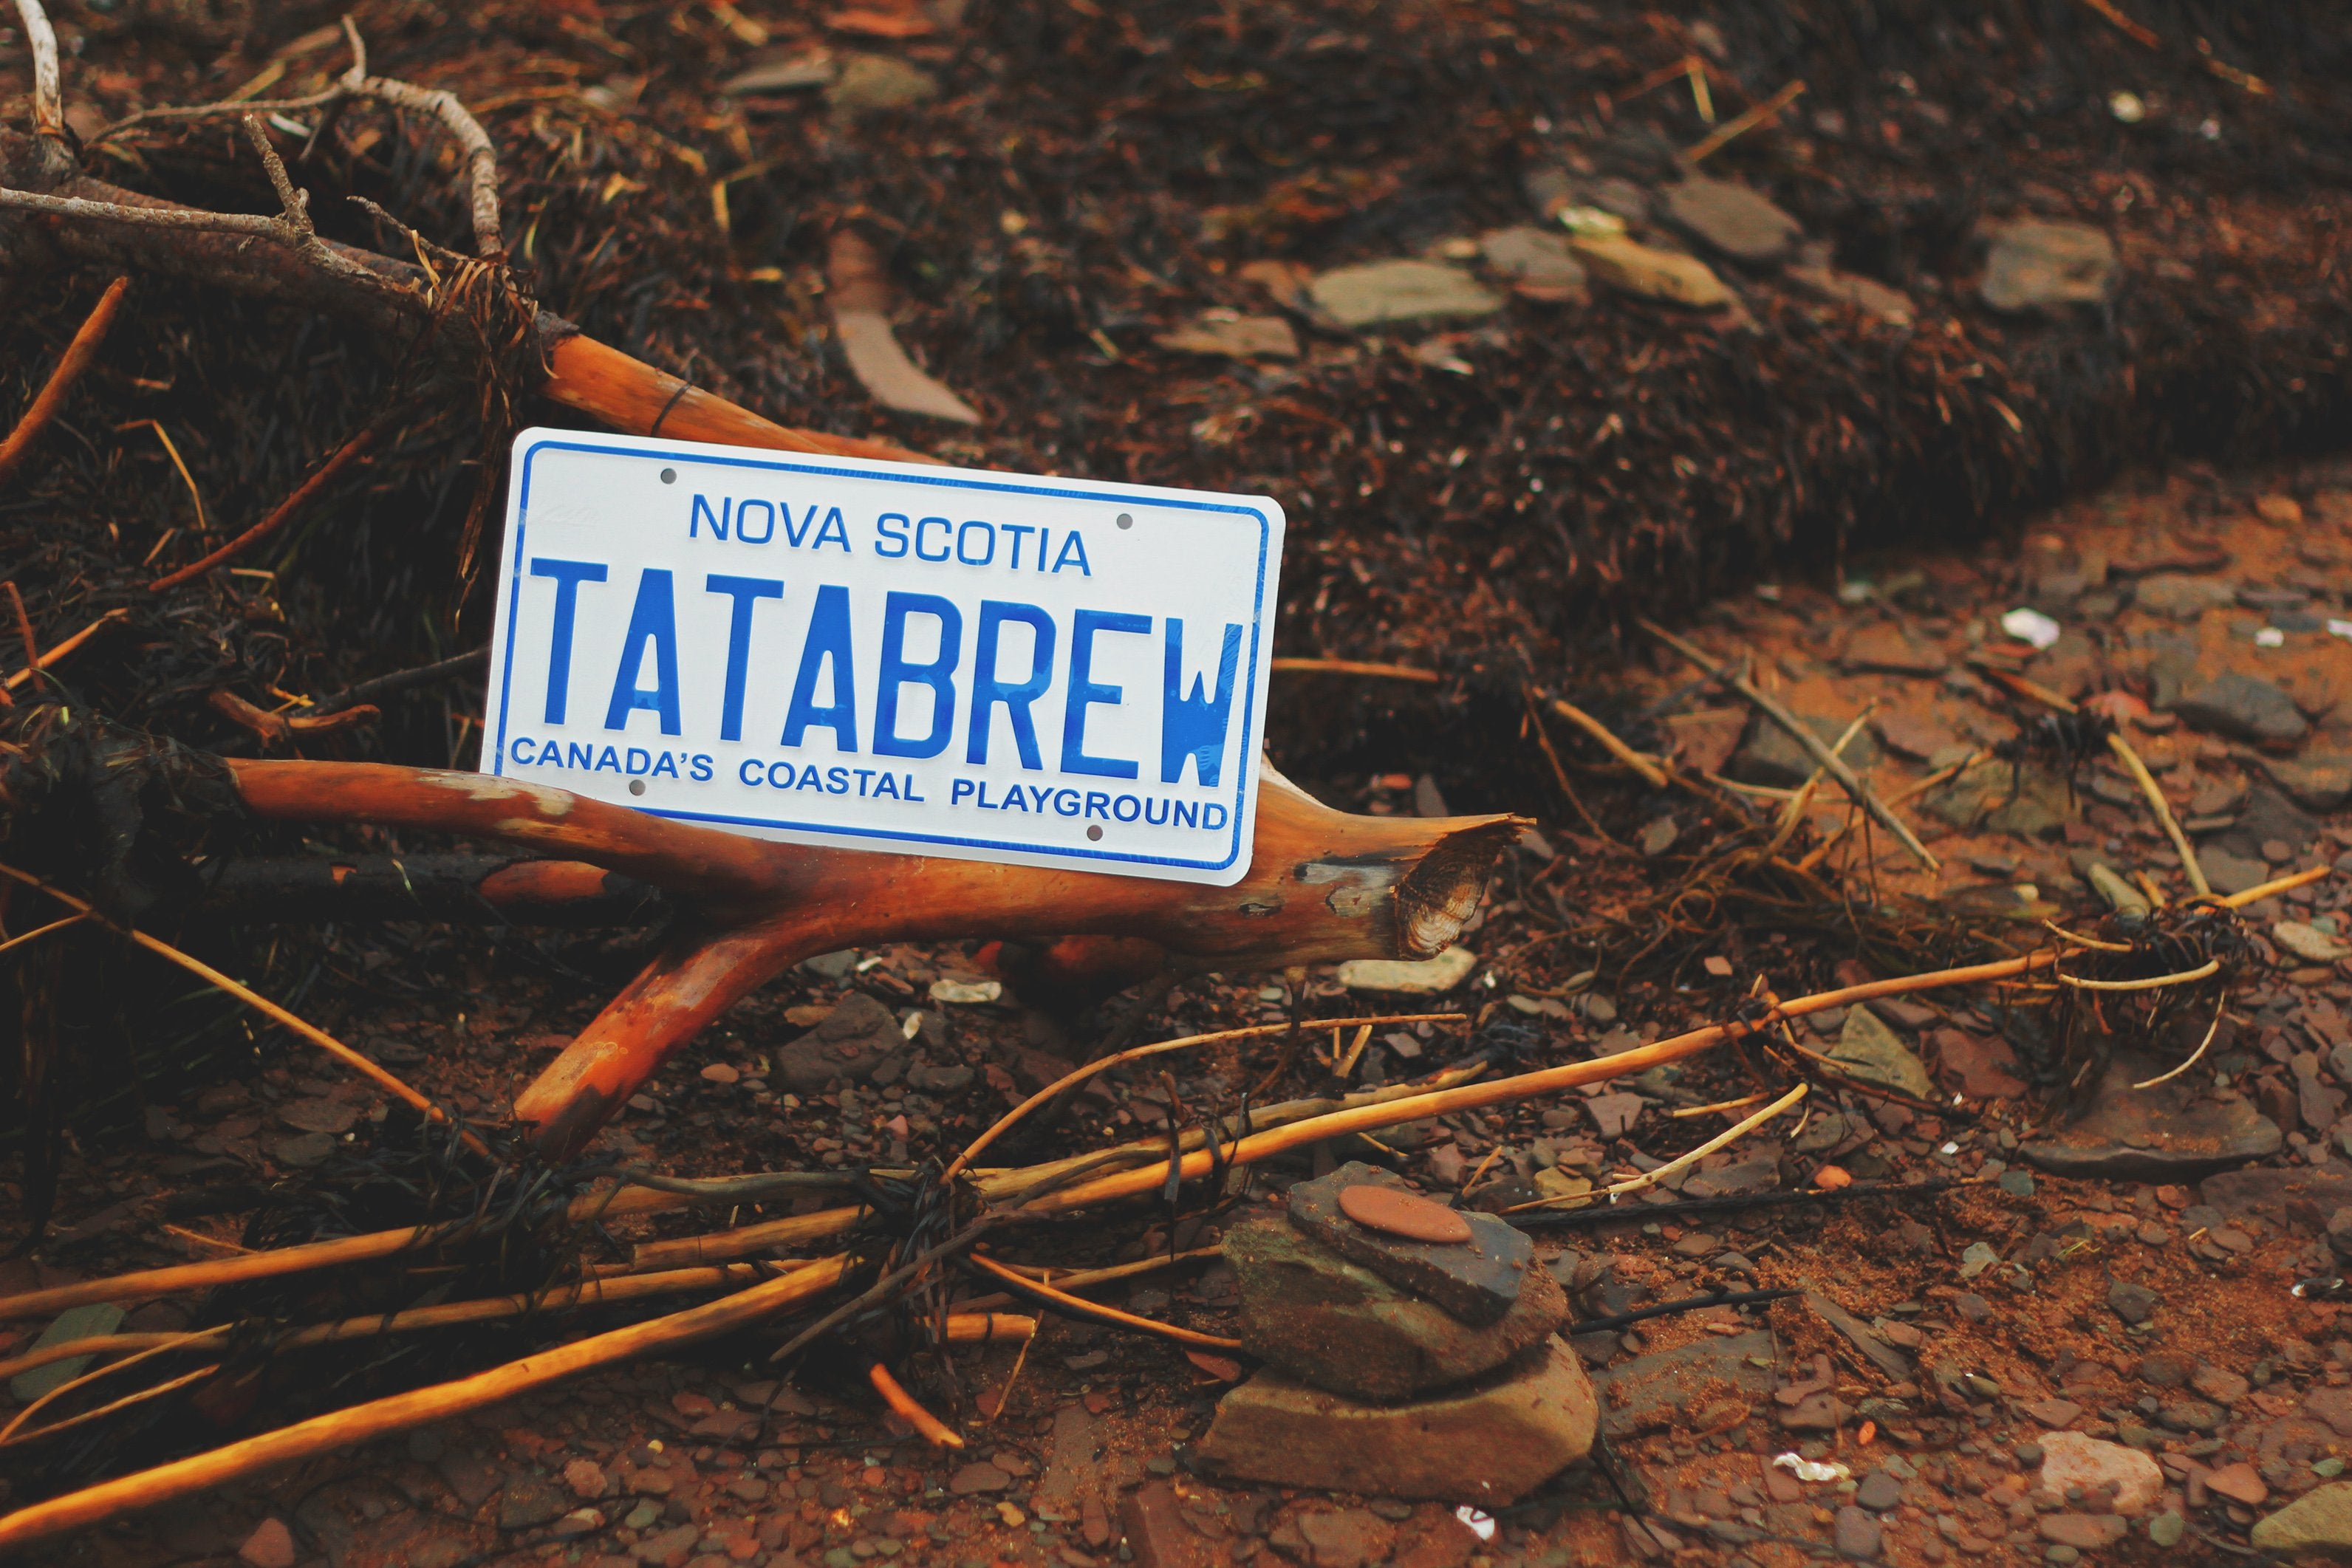 TATA BREW License Plate